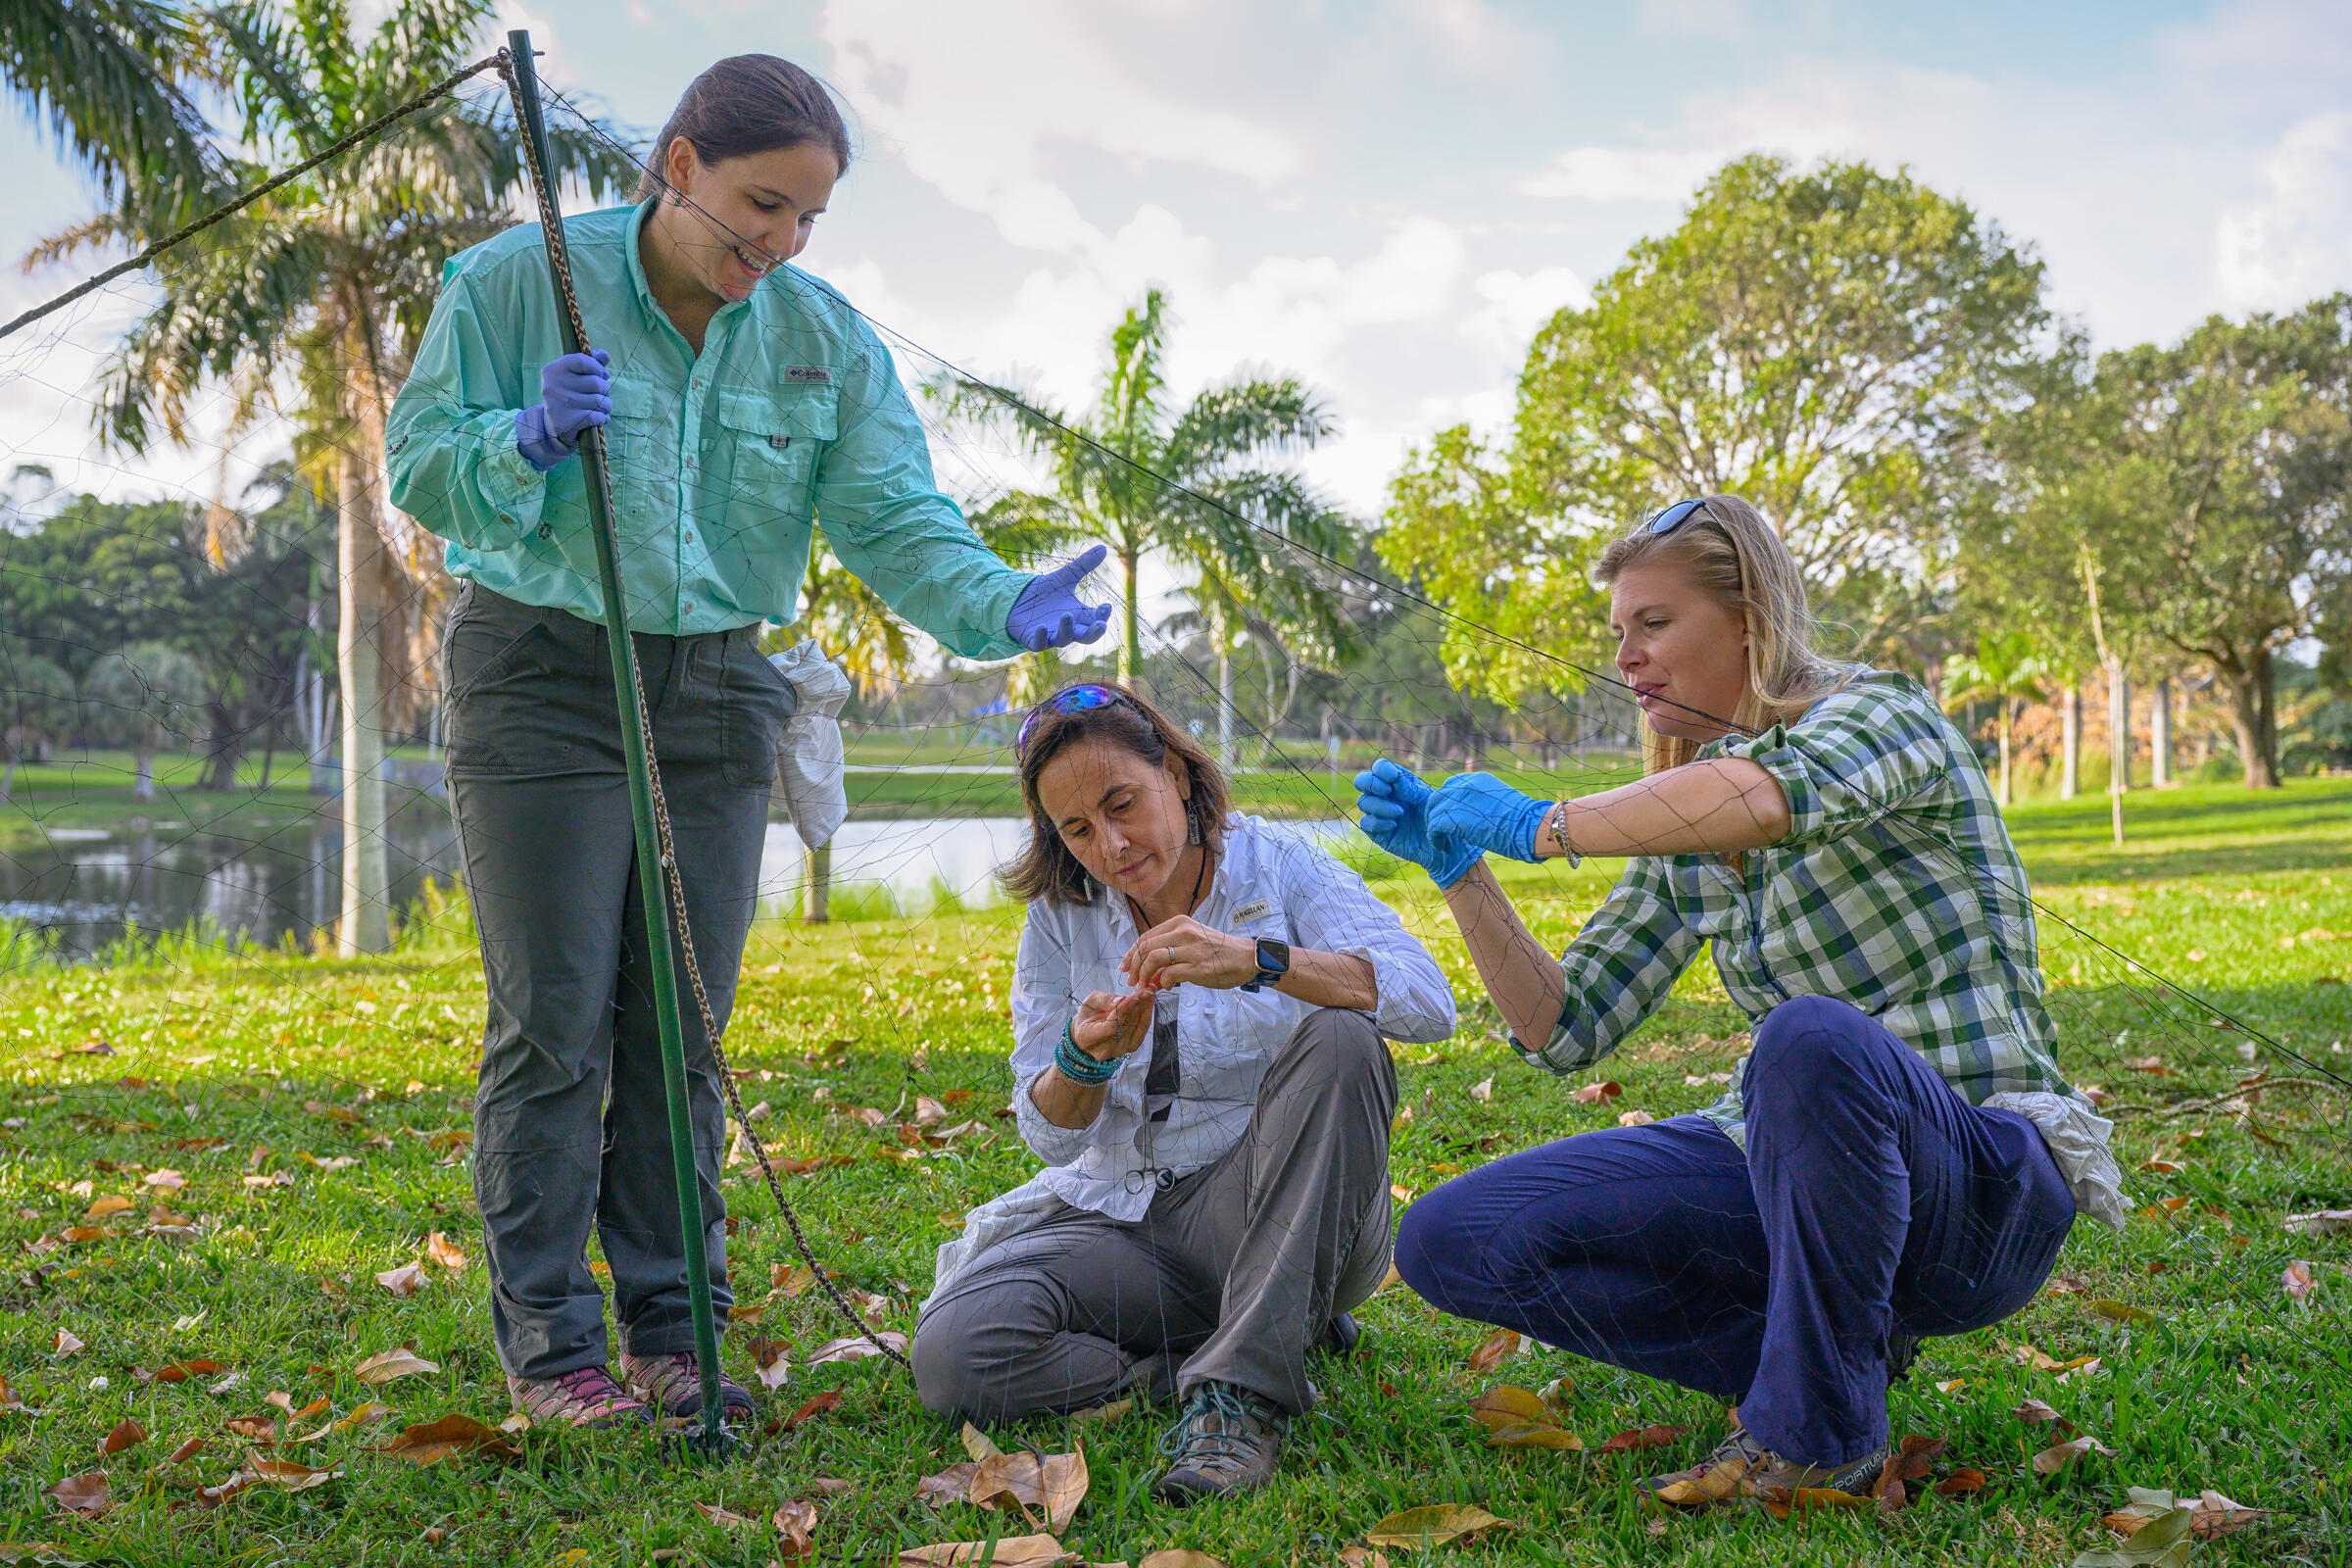 Two women sit and crouch on a lawn and one stands with a hand reaching out against the backdrop of a pond and palm trees. With surgical gloves on their hands, they are all concentrated on fiddling with a fine net attached to a short pole.